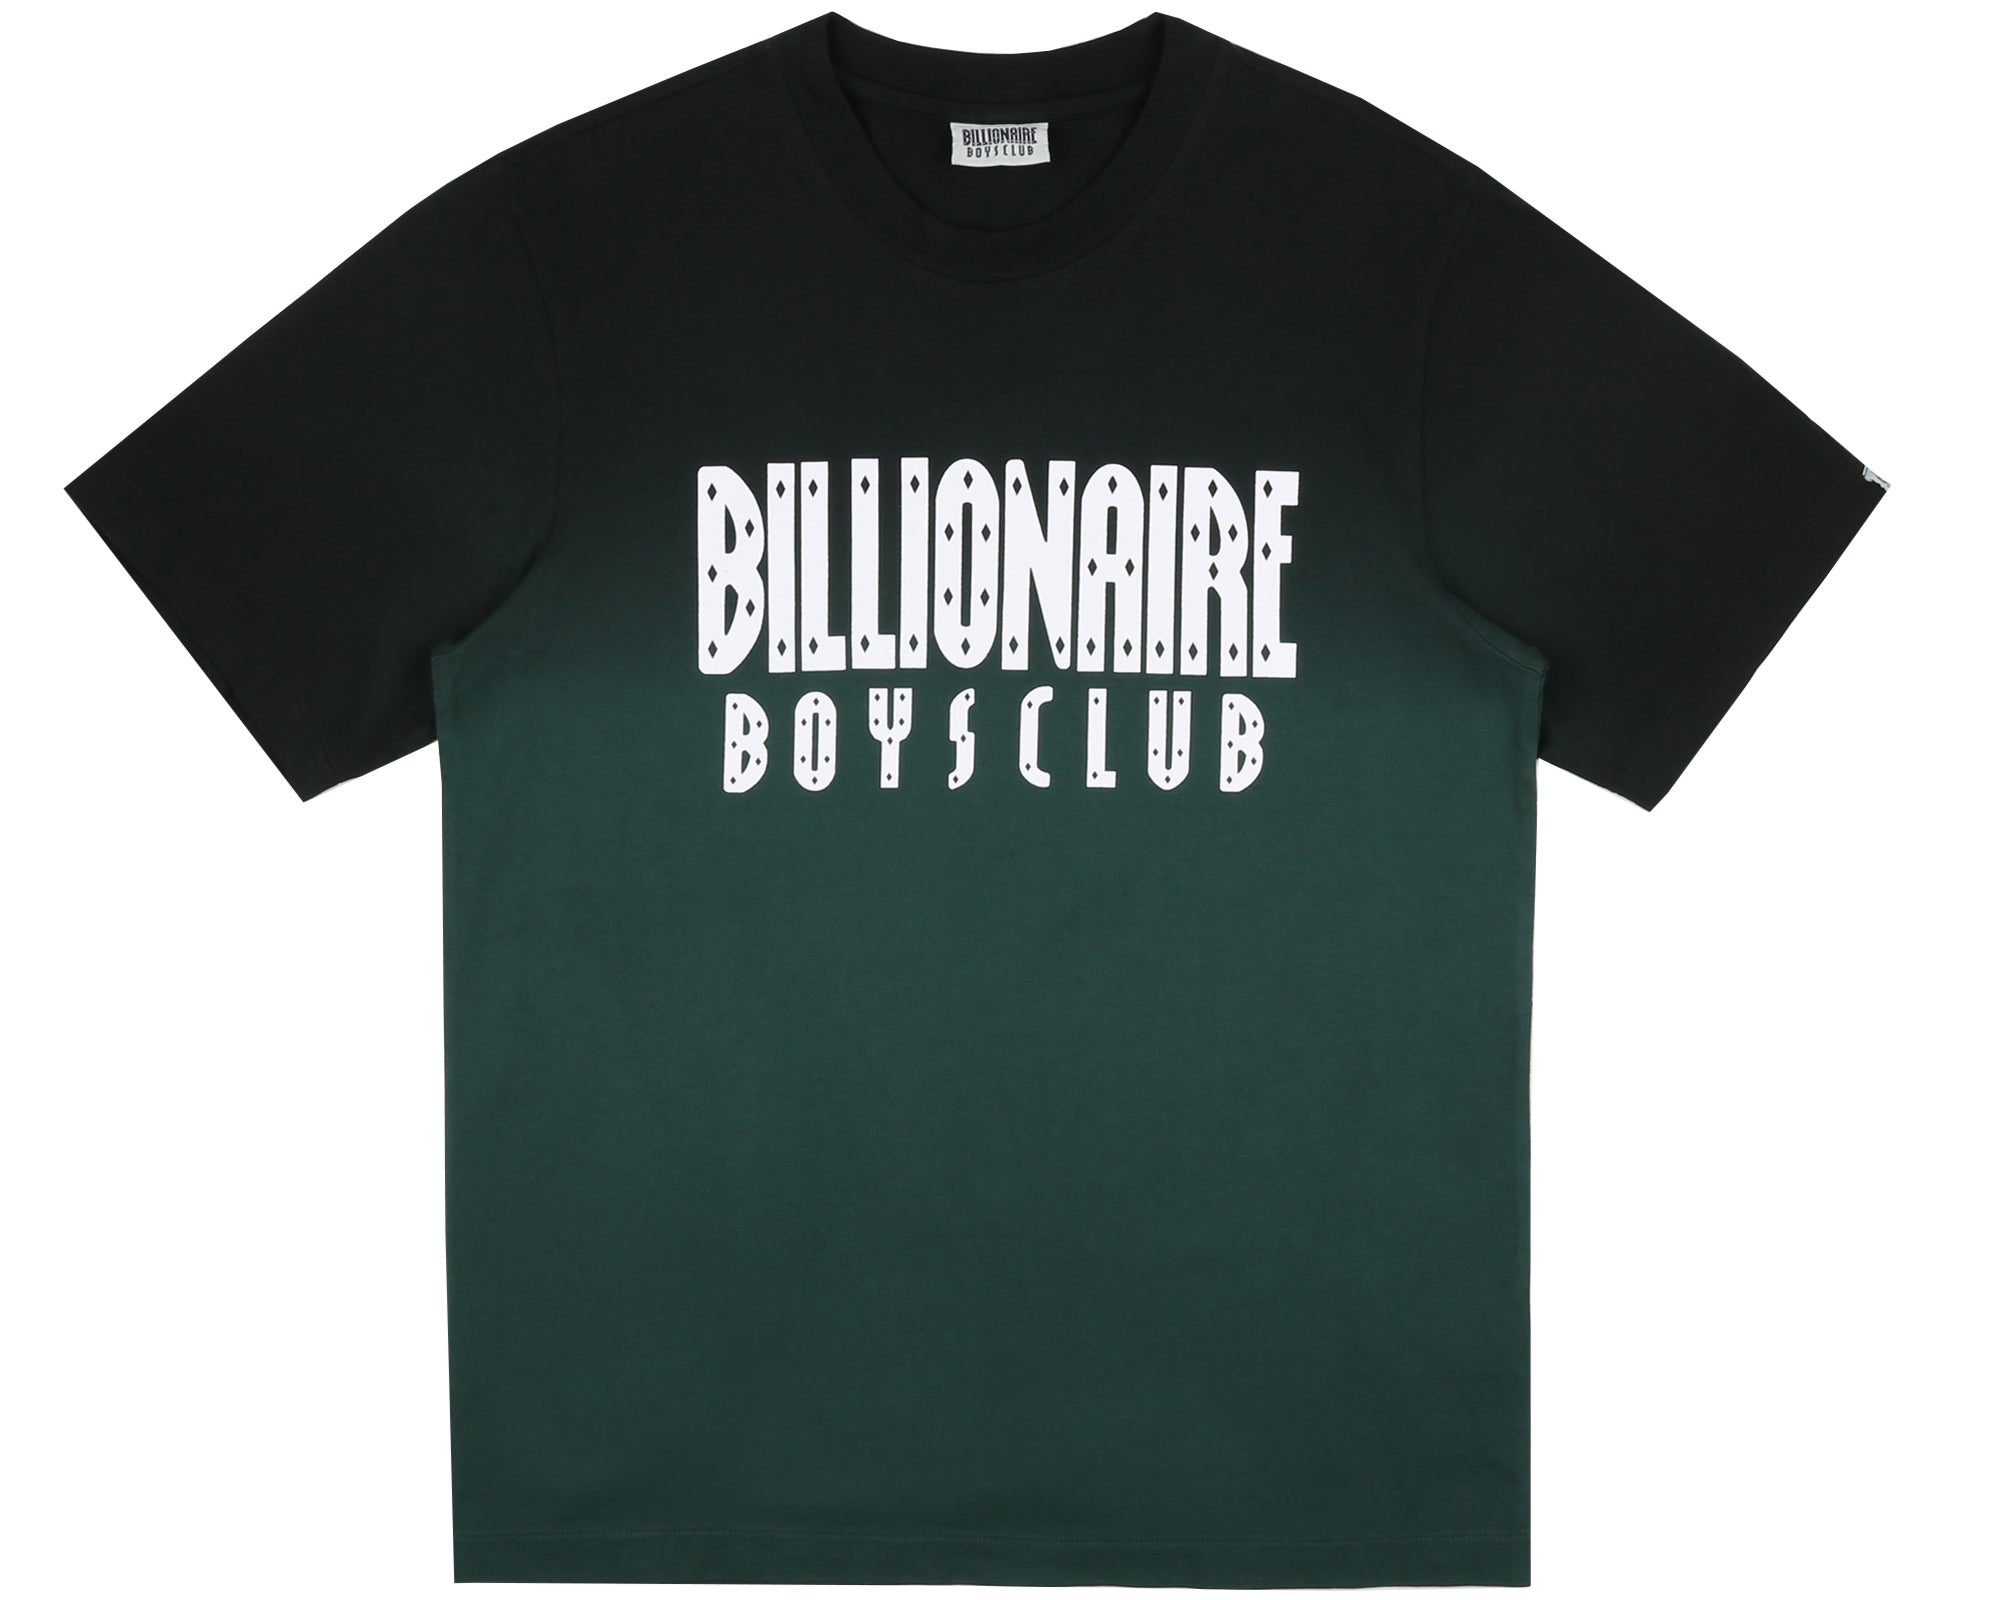 DIP DYE STRAIGHT LOGO T-SHIRT - GREEN